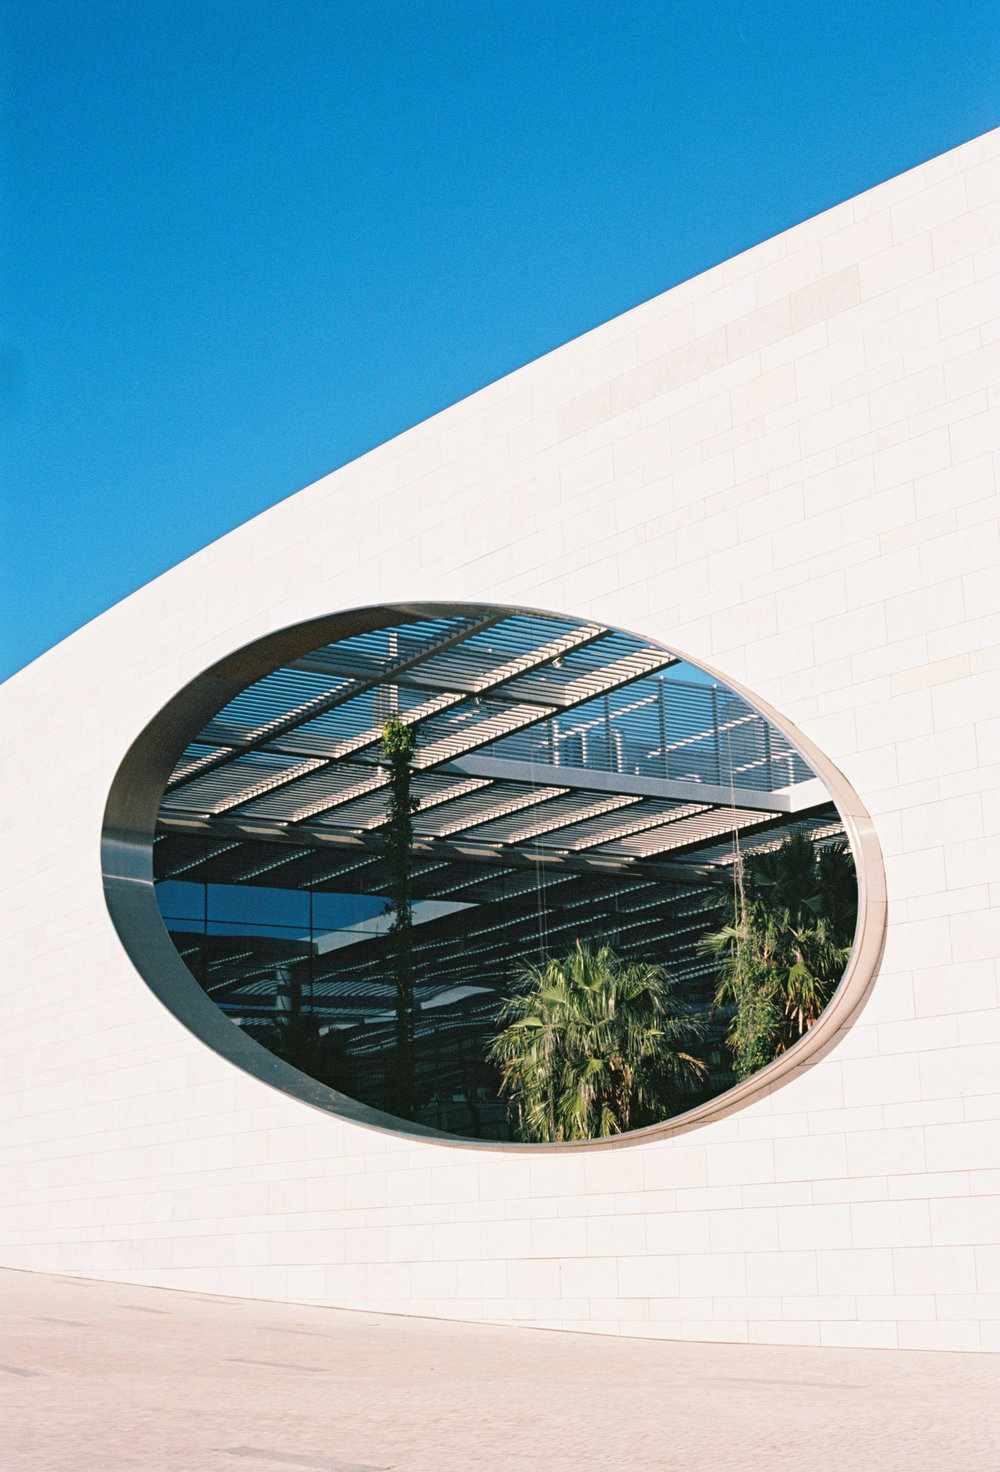 2016 Lisbon Architecture. Kodak Portra 400 35mm Film. Champalimaud Centre for the Unknown